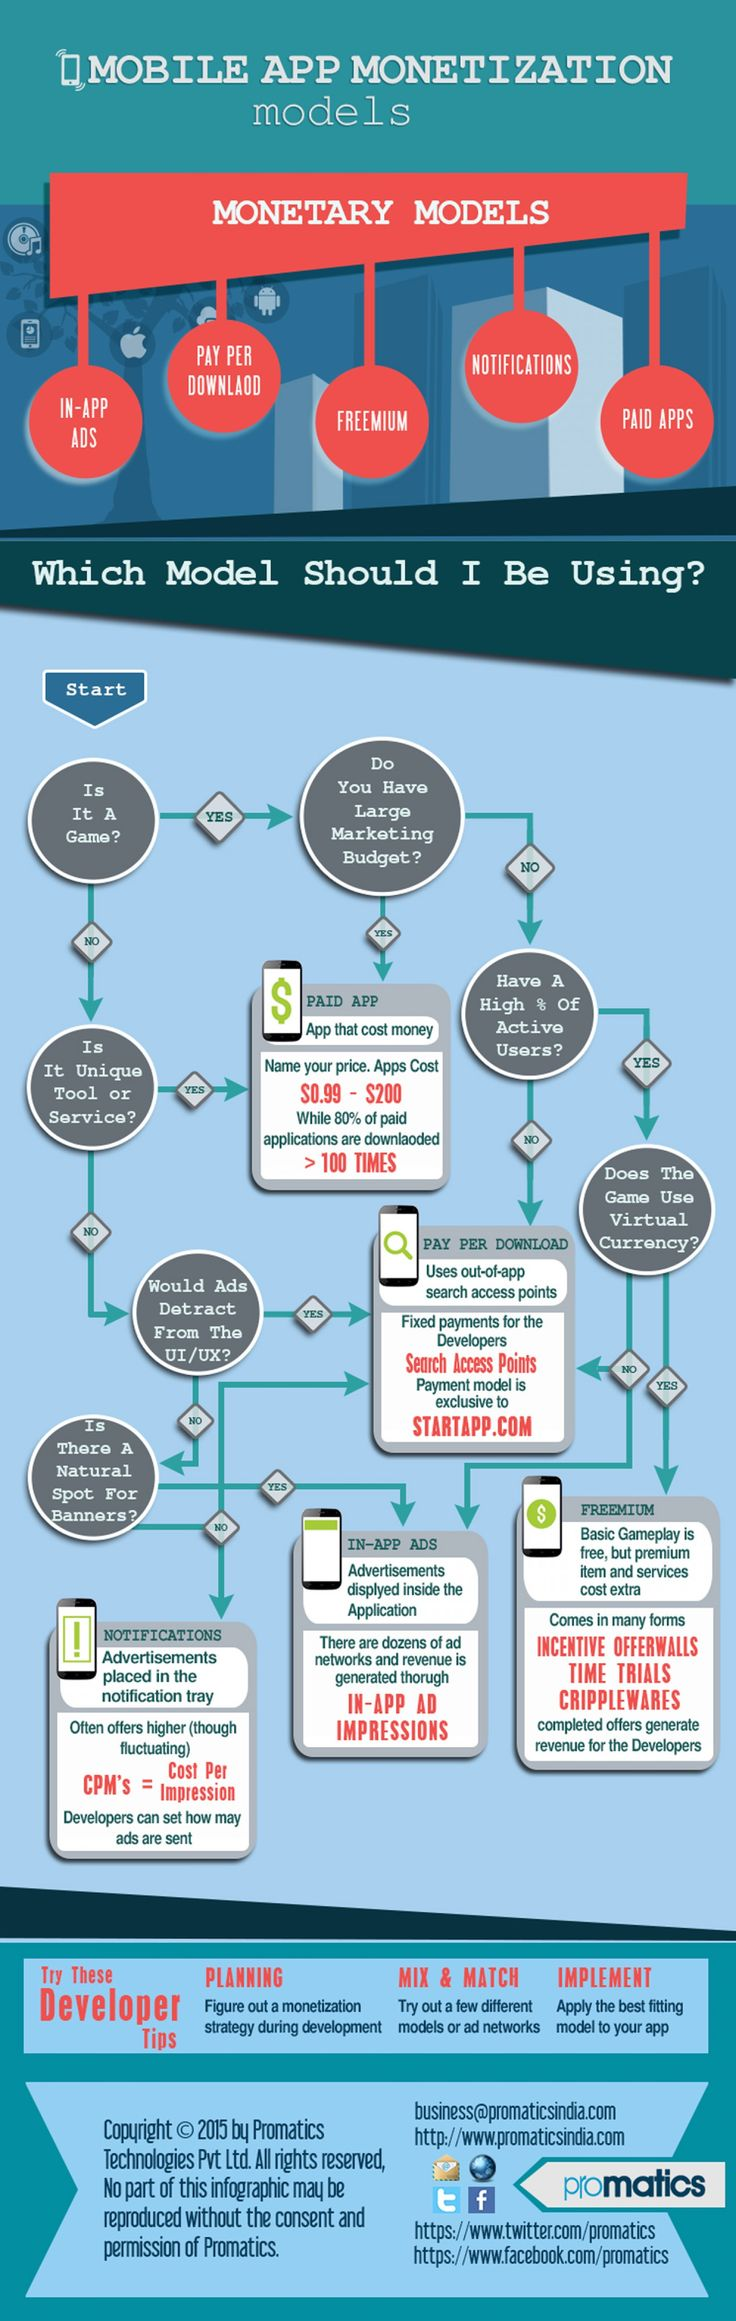 Strategy For Successful Mobile App Monetization #infographic